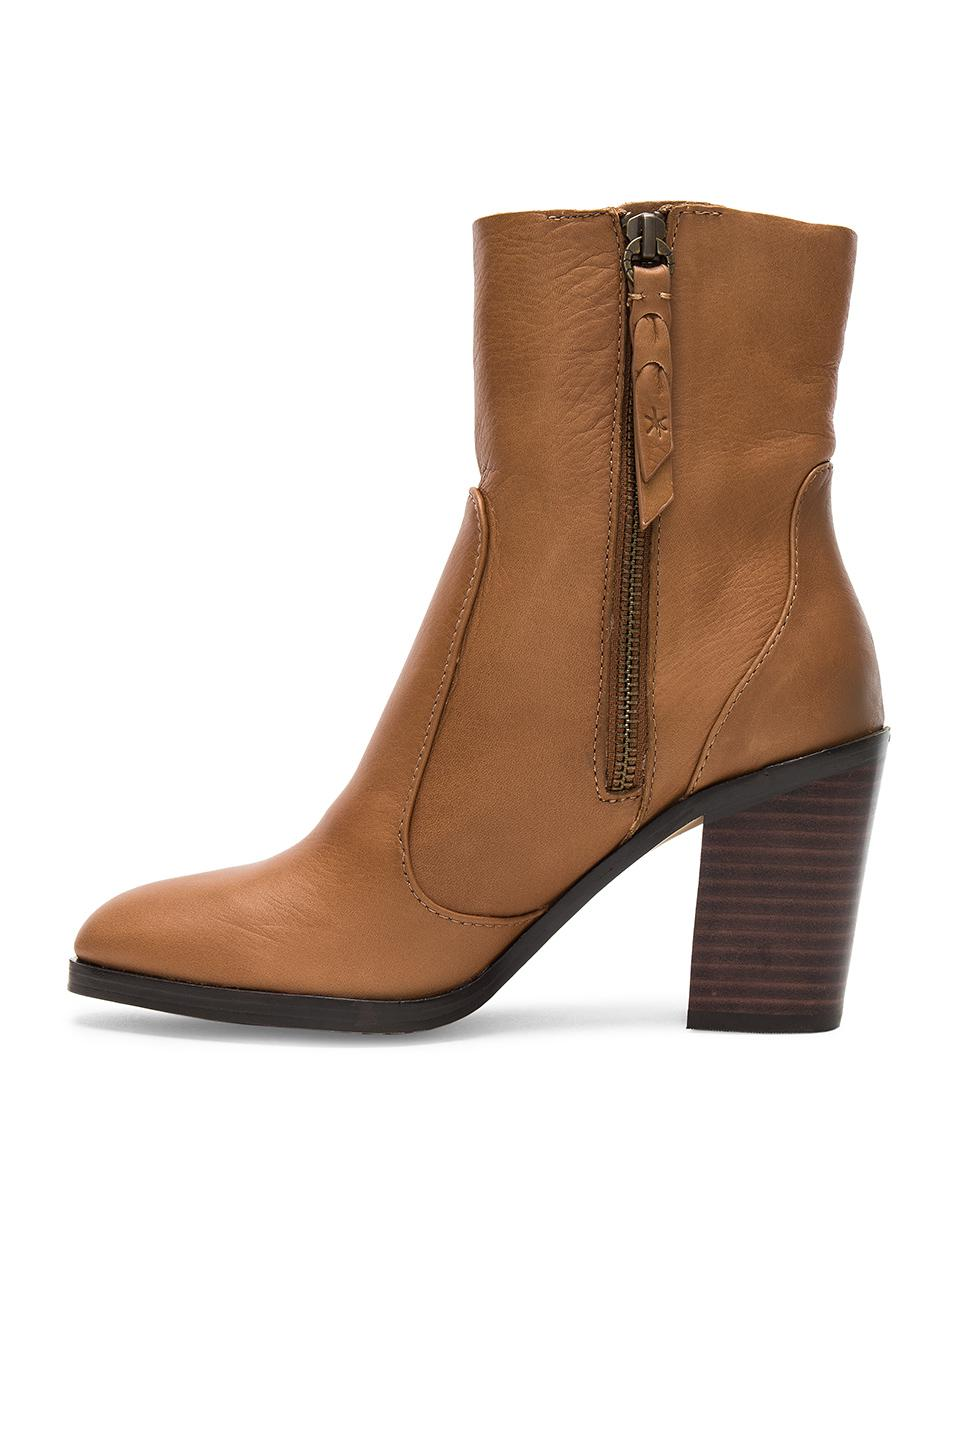 Splendid Leather Roselyn Bootie in Chestnut (Brown)